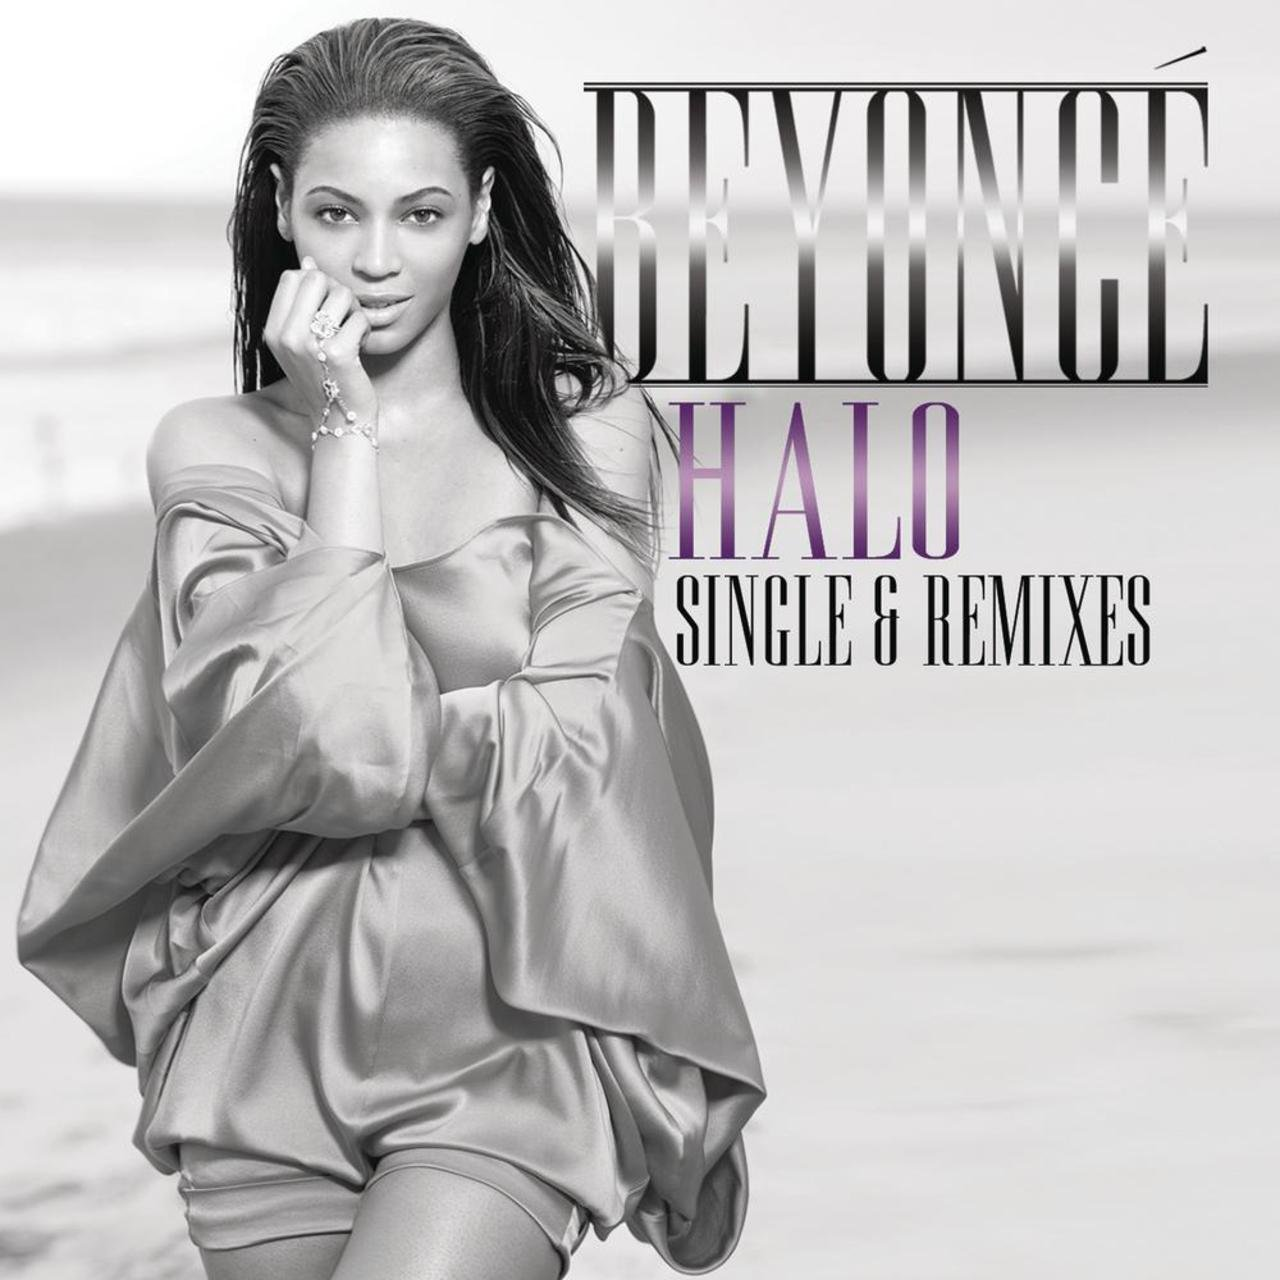 Halo - Single & Remixes